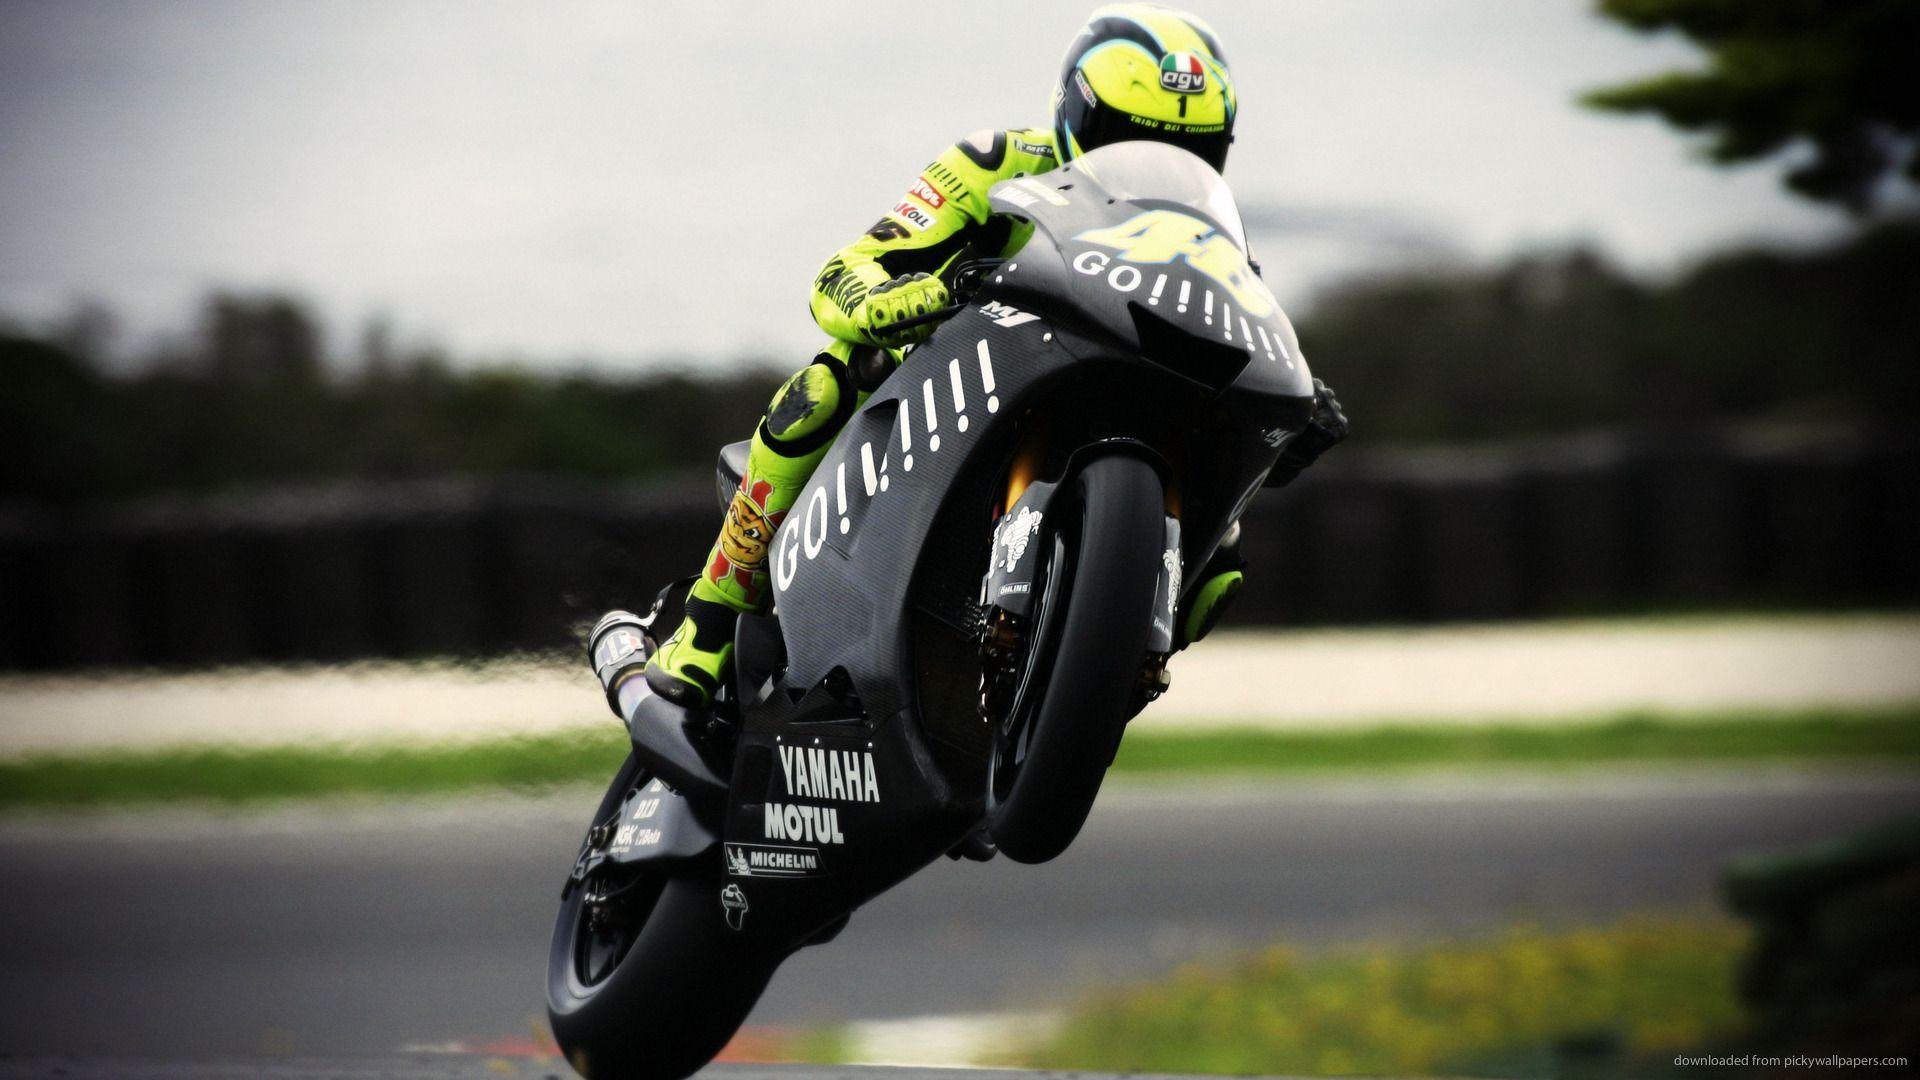 Best images about vr valentino rossi on pinterest ducati 19201200 best images about vr valentino rossi on pinterest ducati 19201200 wallpaper valentino rossi voltagebd Images